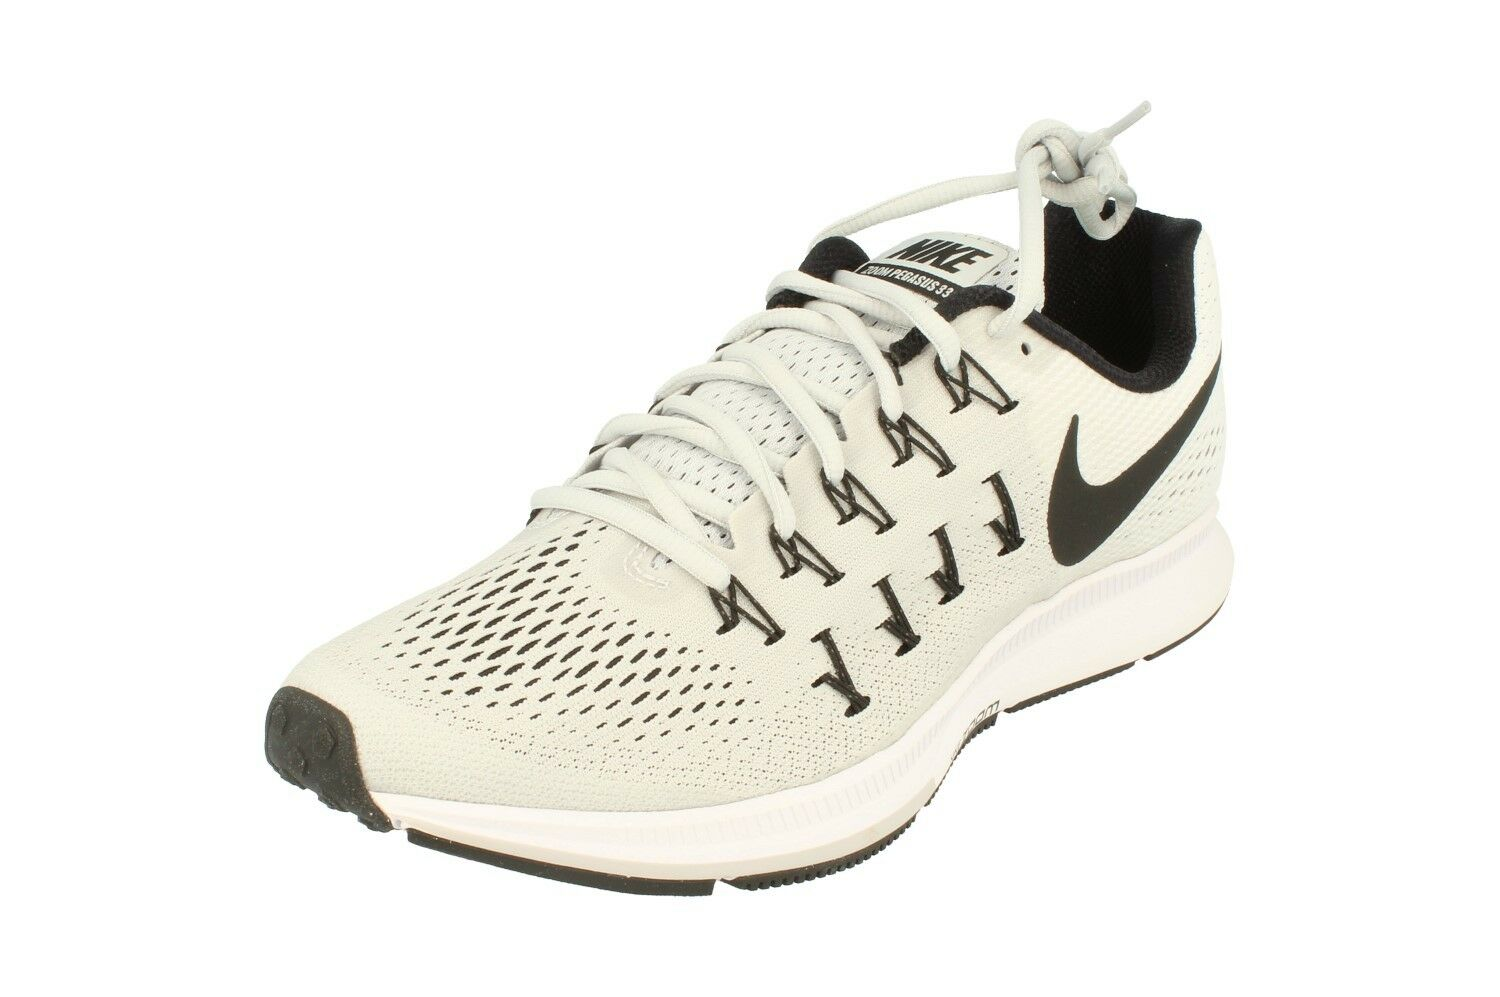 26a35d66ae21 Nike Air Zoom Pegasus 33 Tb Mens Running Running Running Trainers 843802  Sneakers Shoes 002 7a0eae